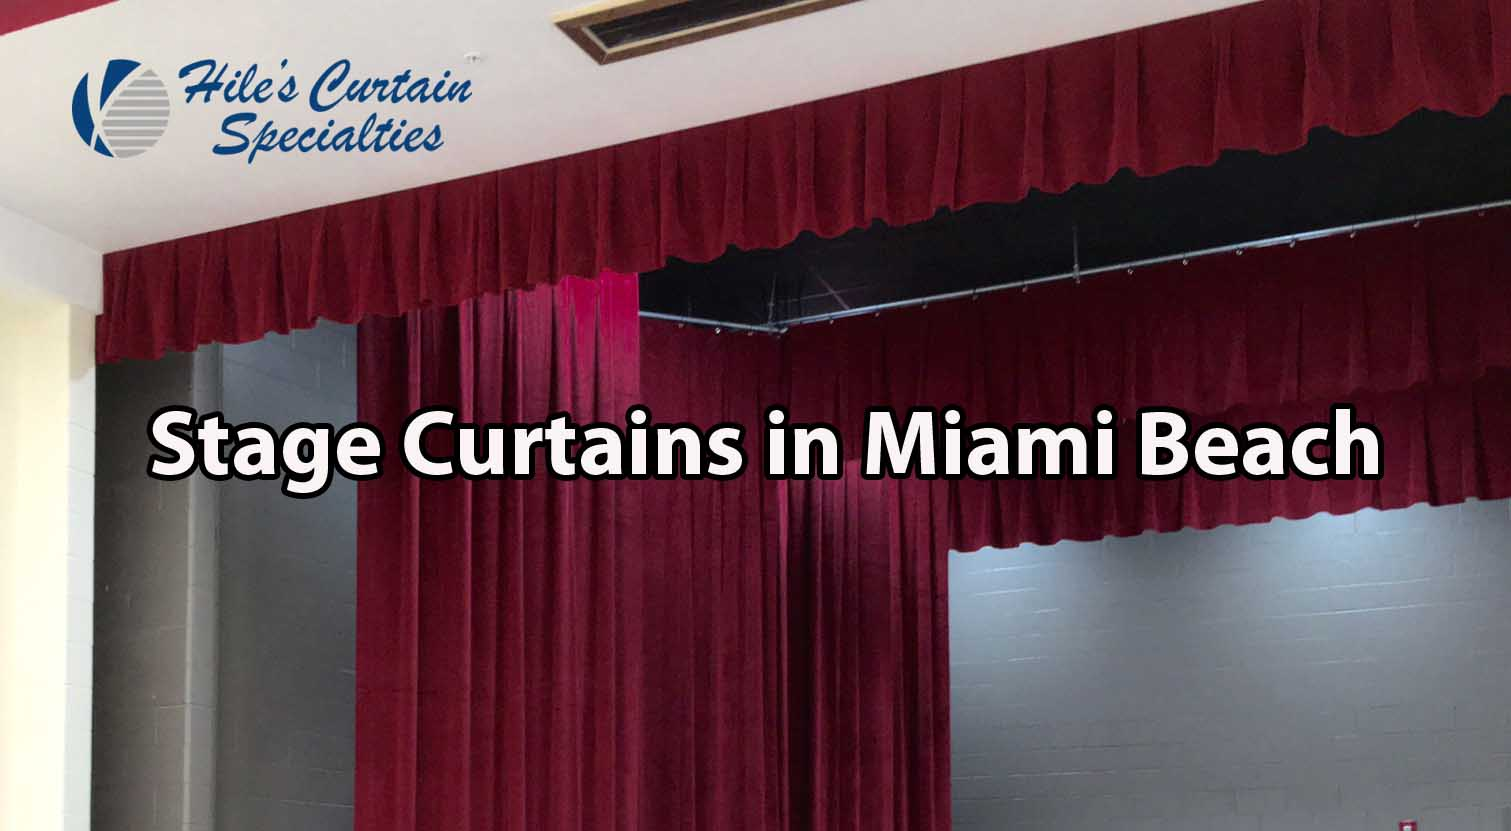 Stage Curtains in Miami Beach